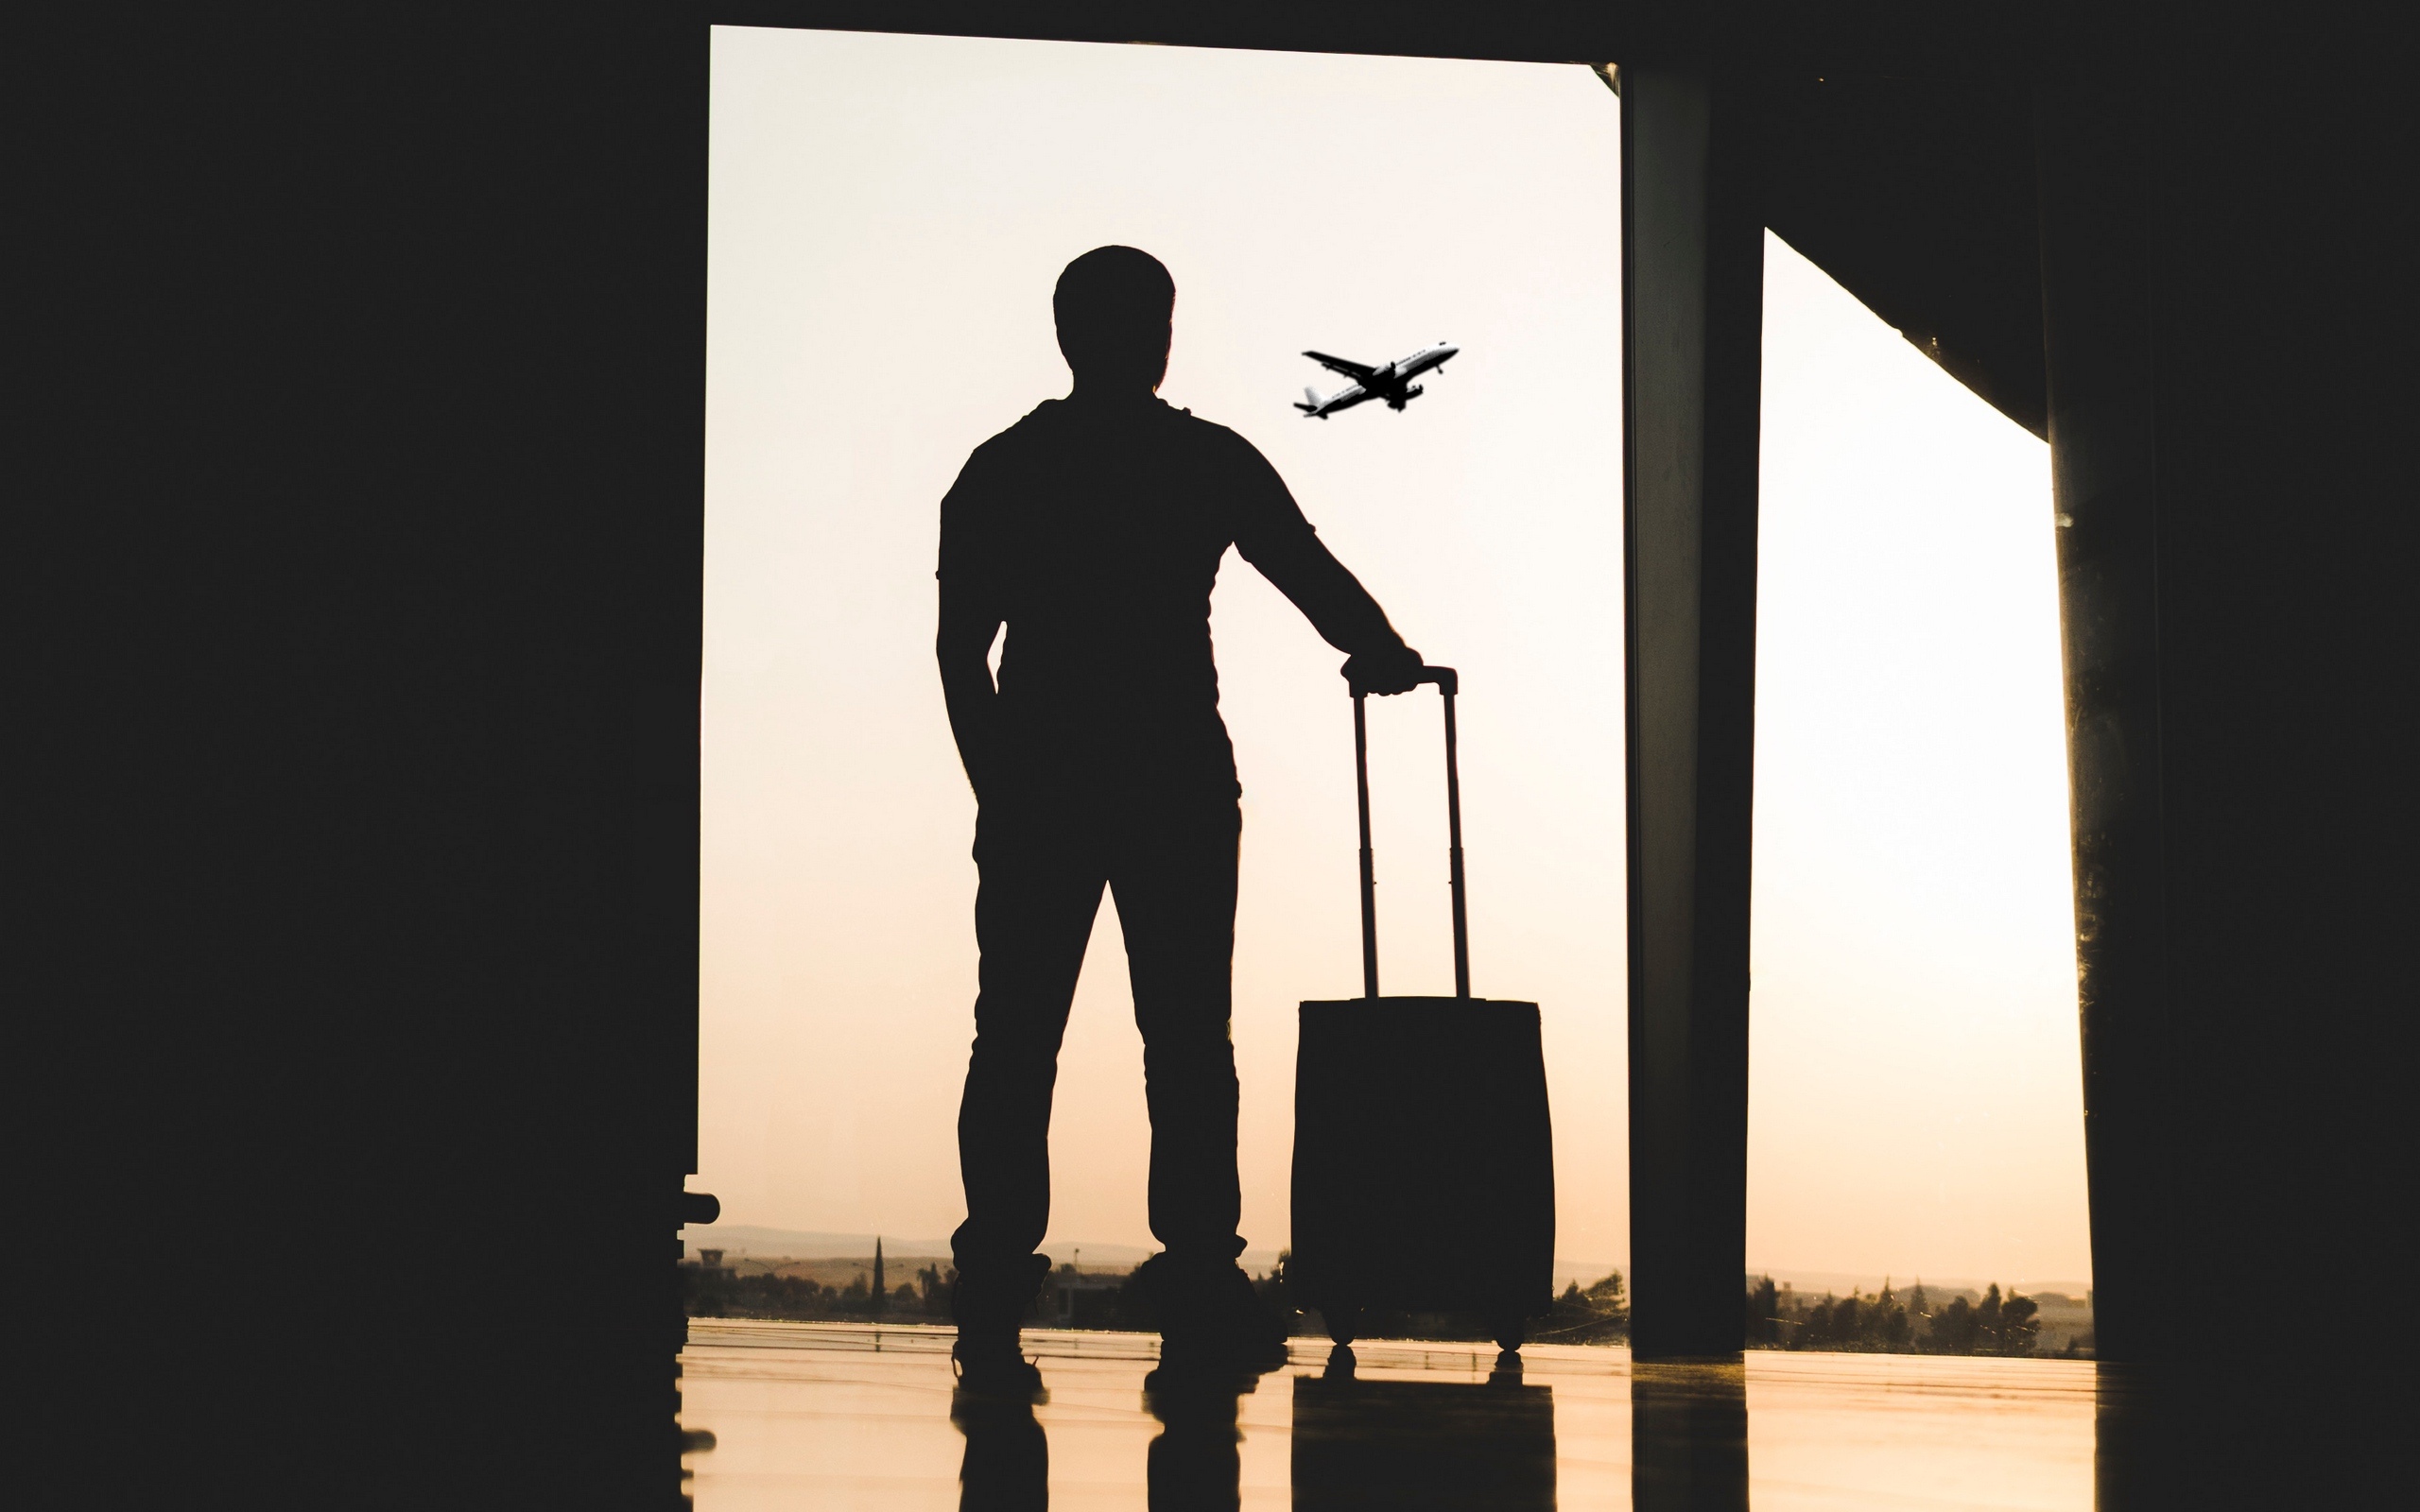 Wallpaper of Man, Silhouette, Airport, Travel, Suitcase